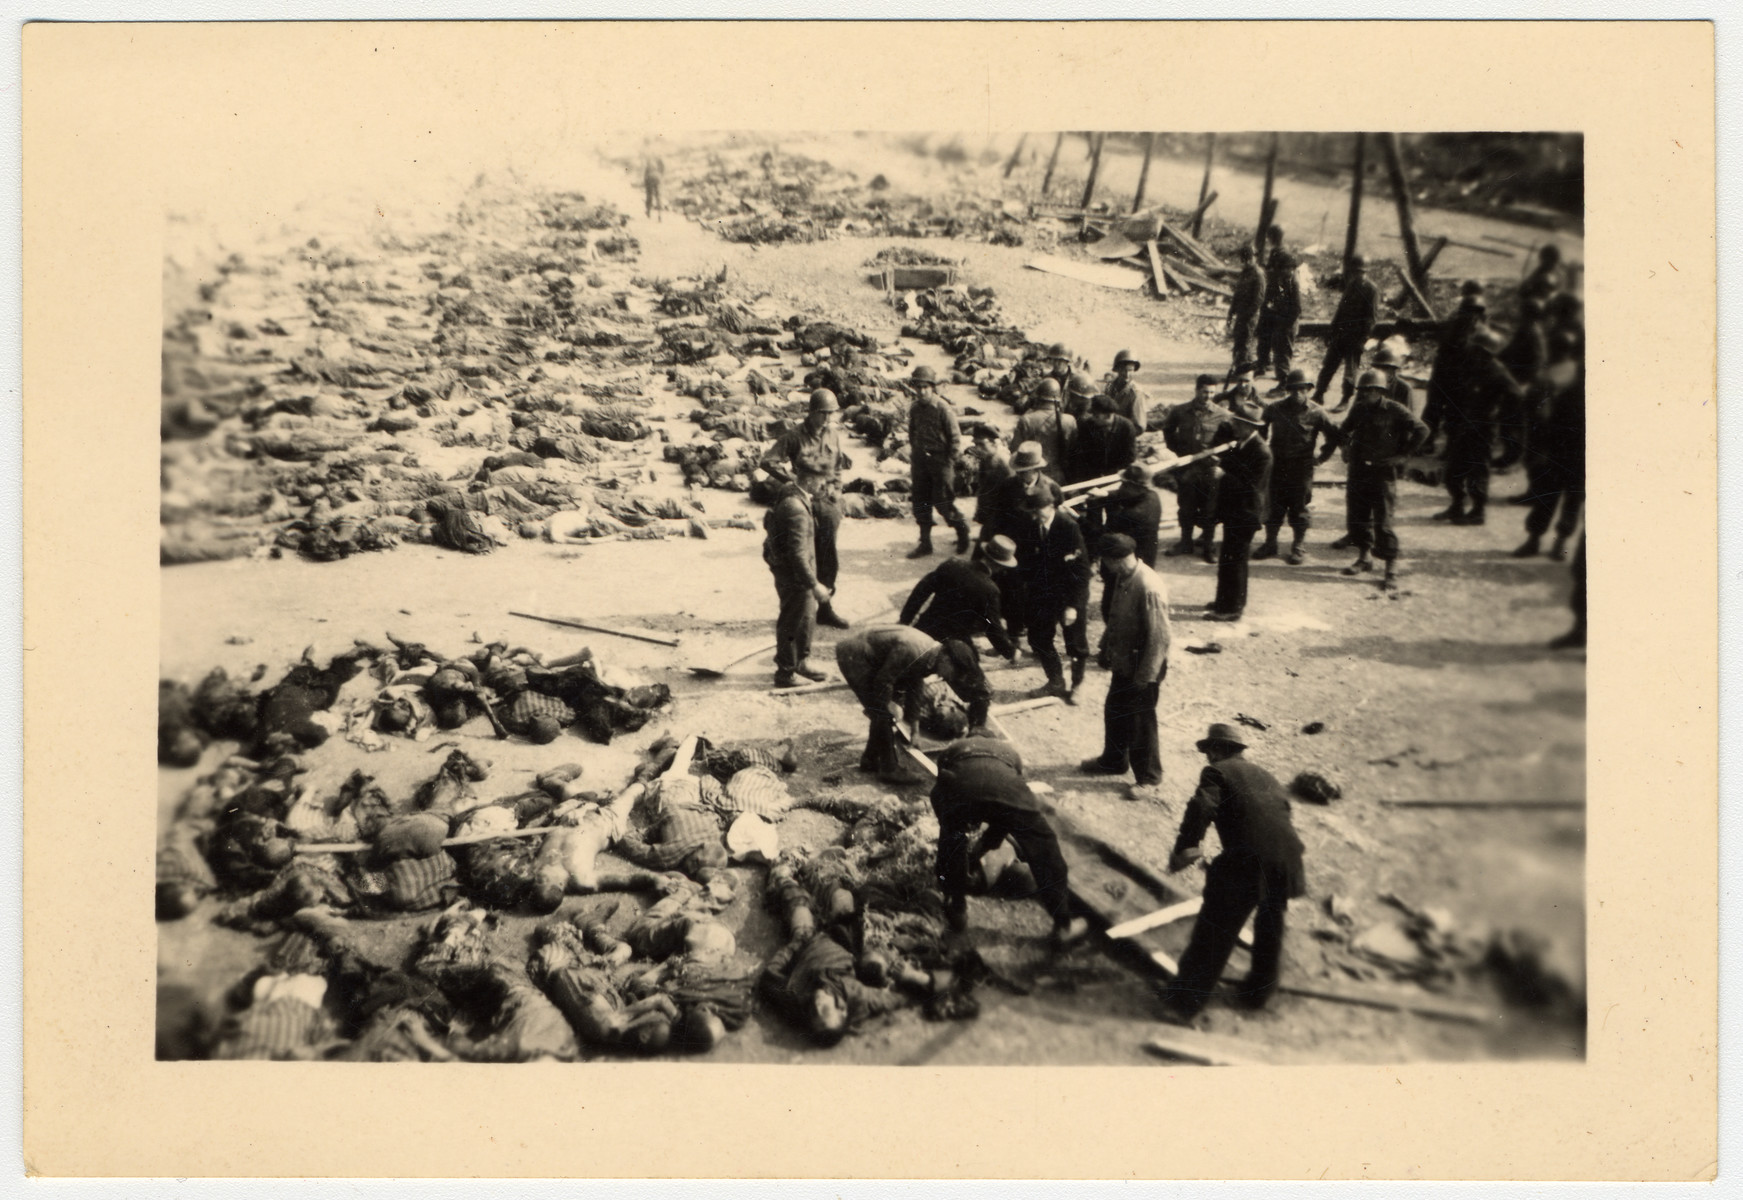 American soldiers force German civilians to bury corpses in the Nordhausen concentration camp.